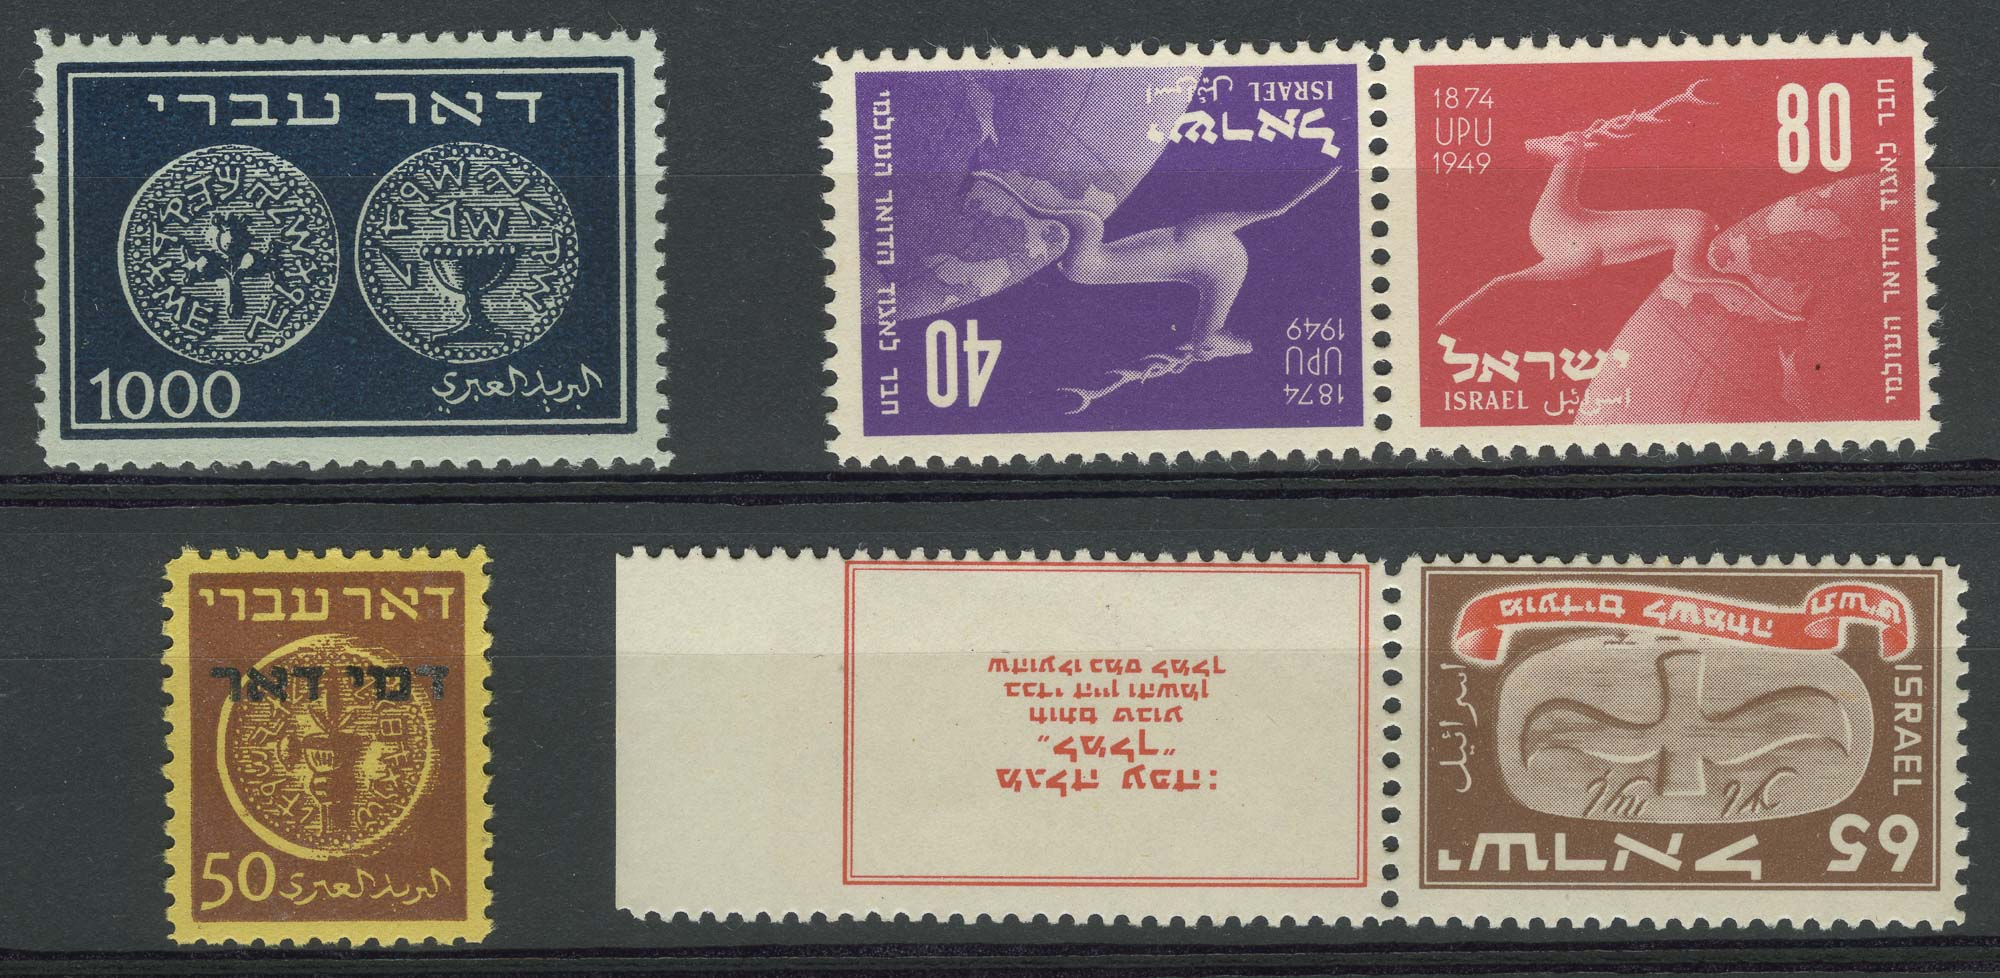 Lot image - Israeli Stamp Collection